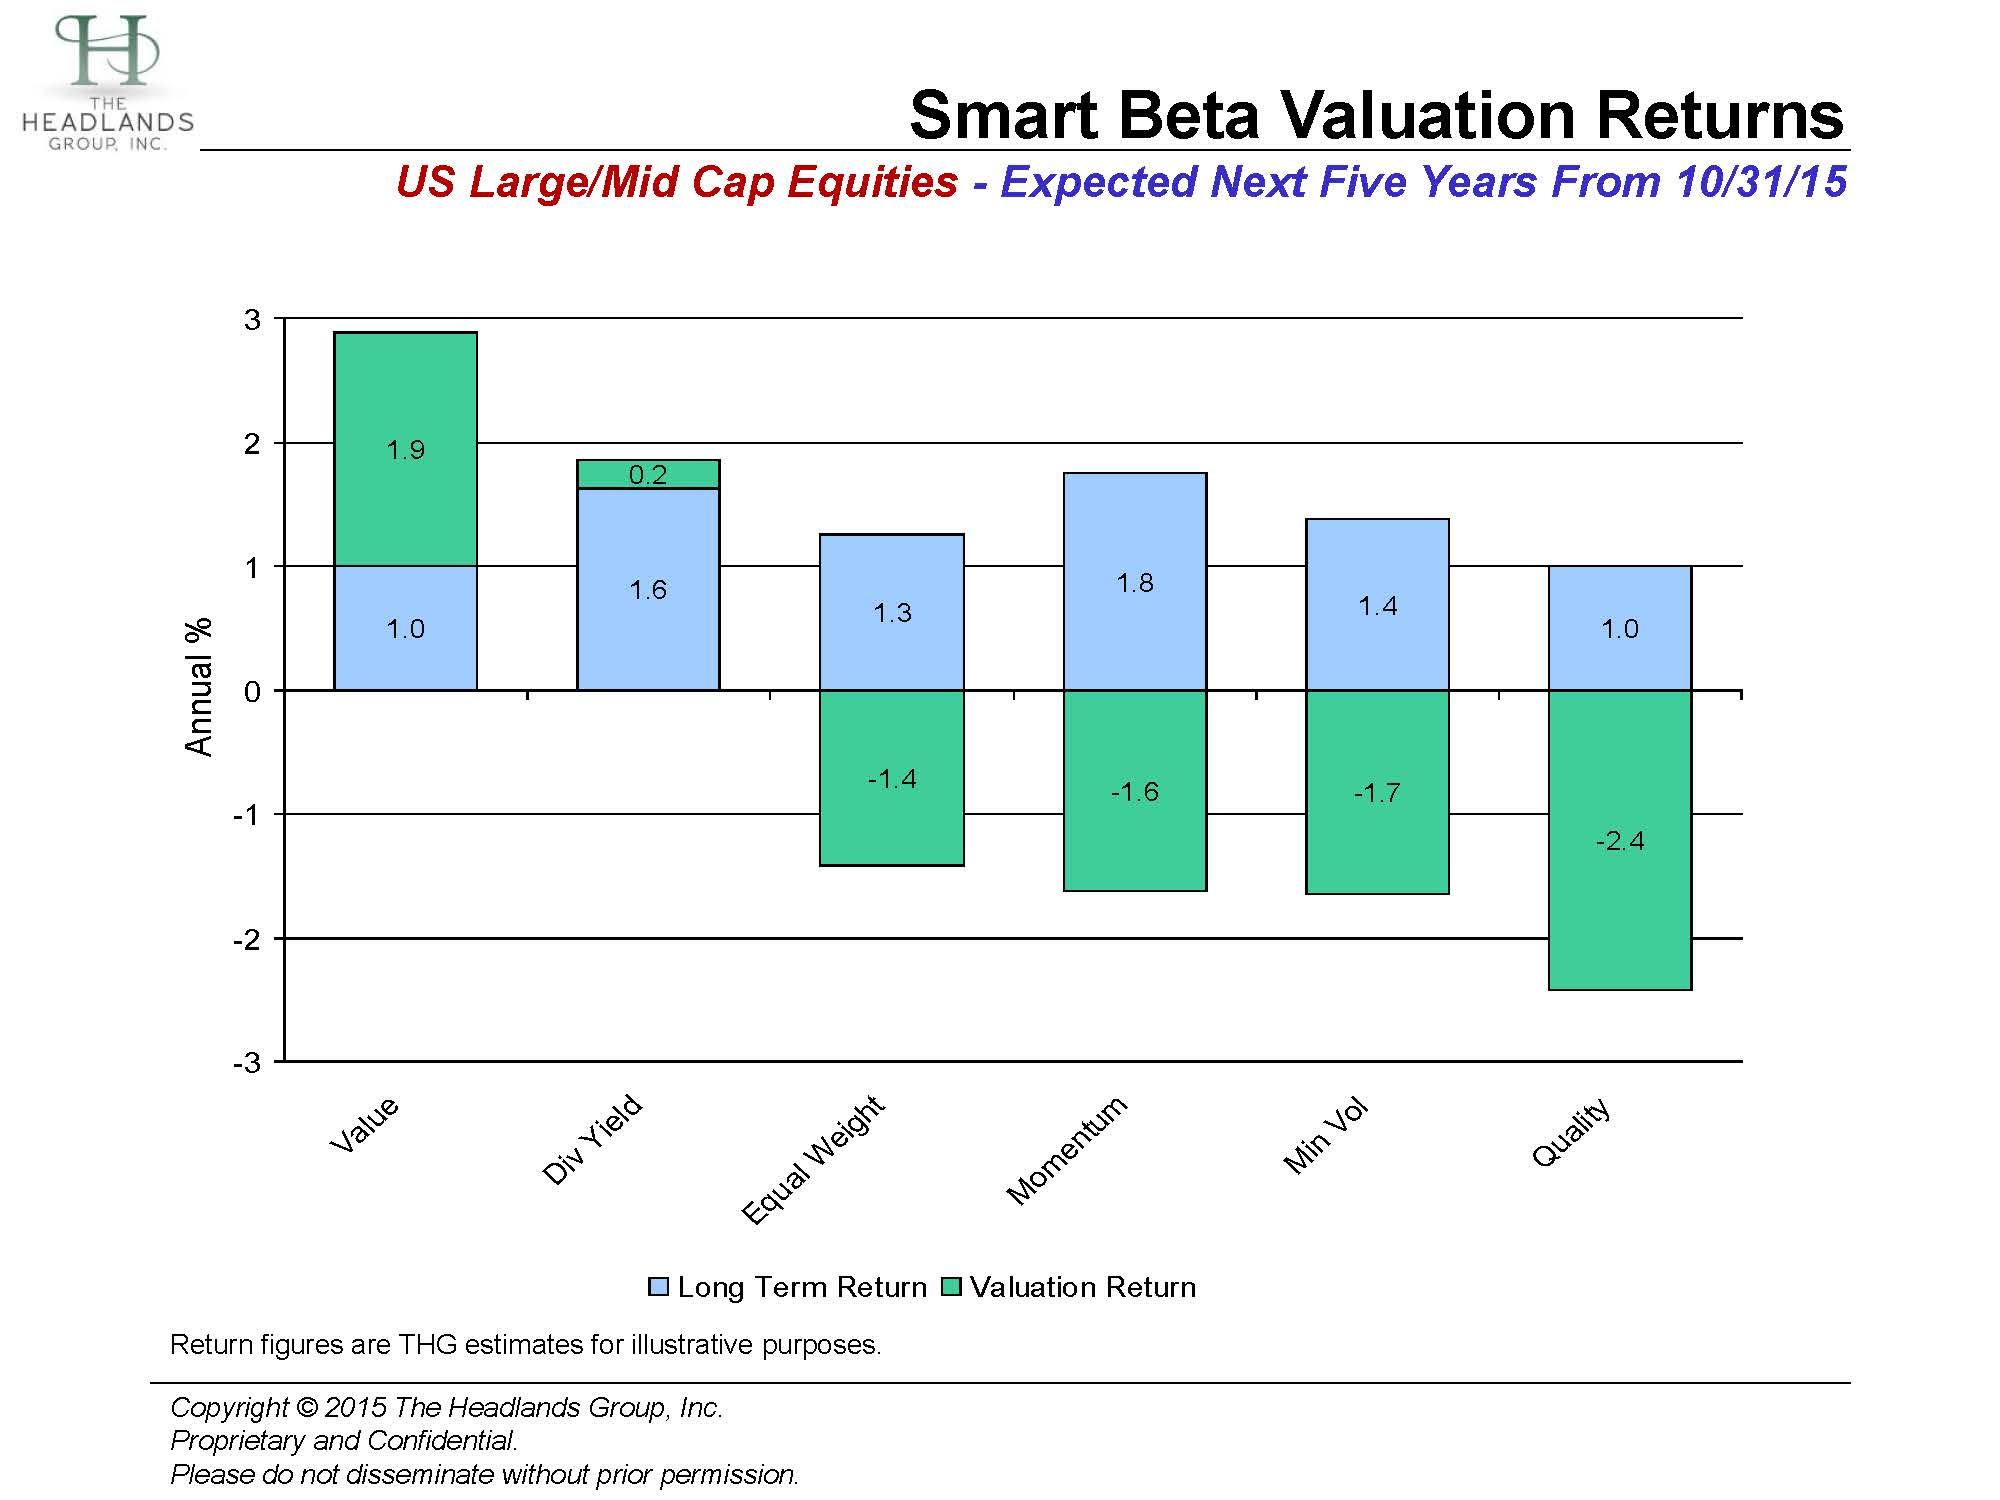 Smart Beta Valuations